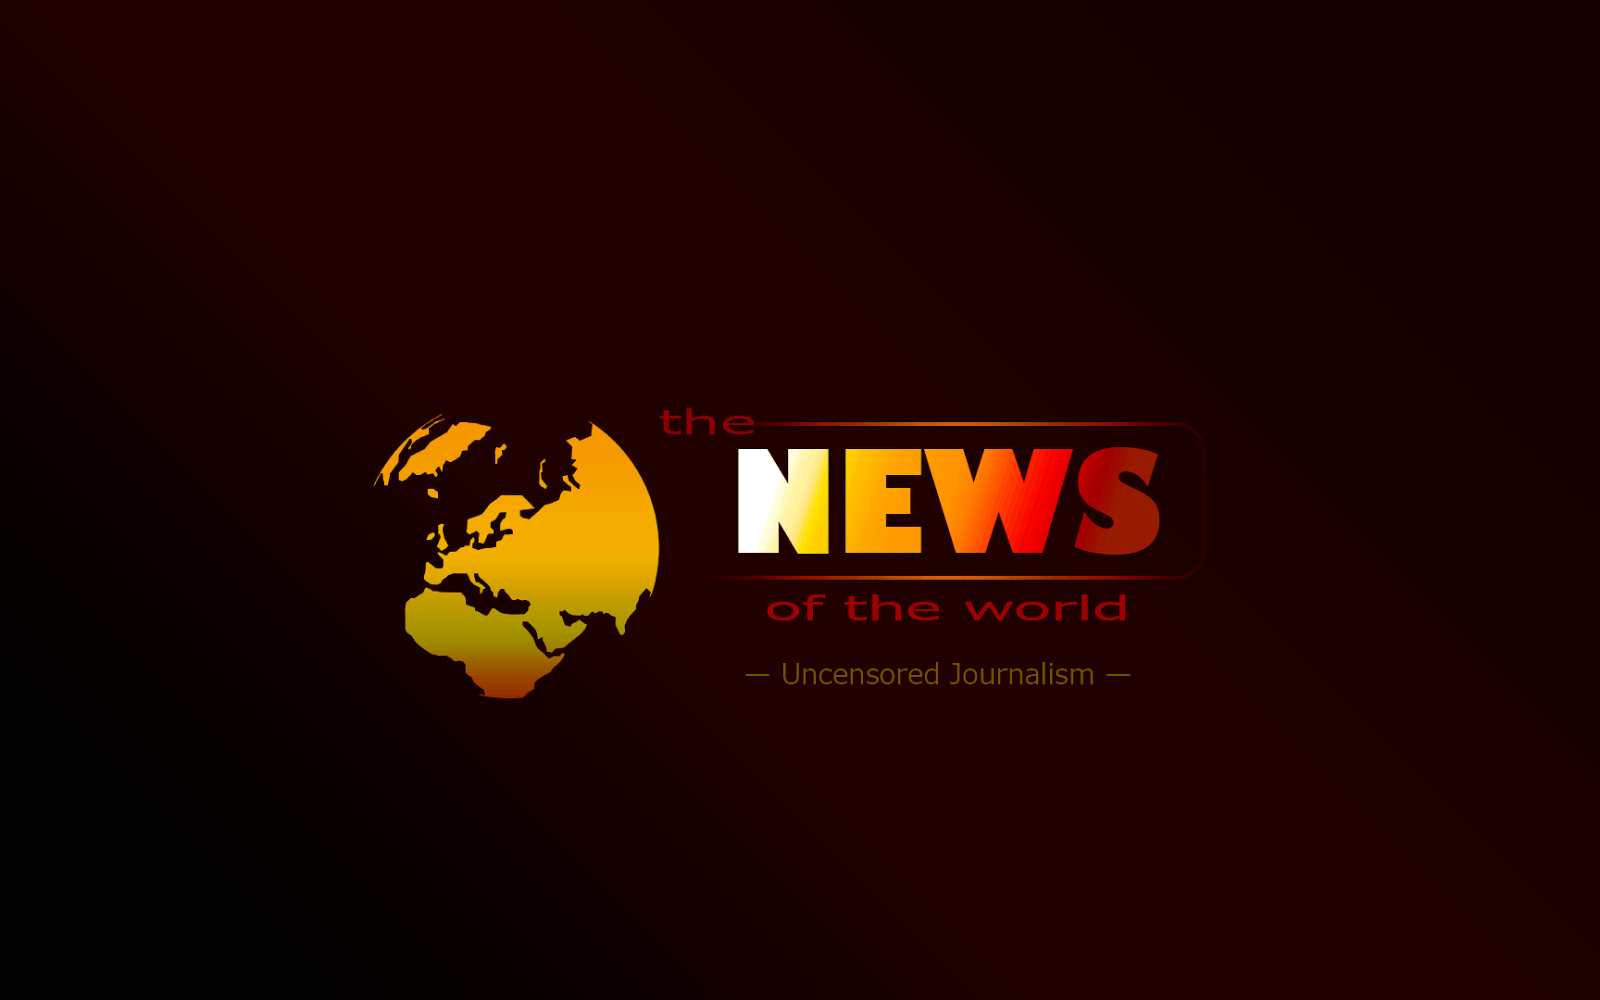 The News of the World